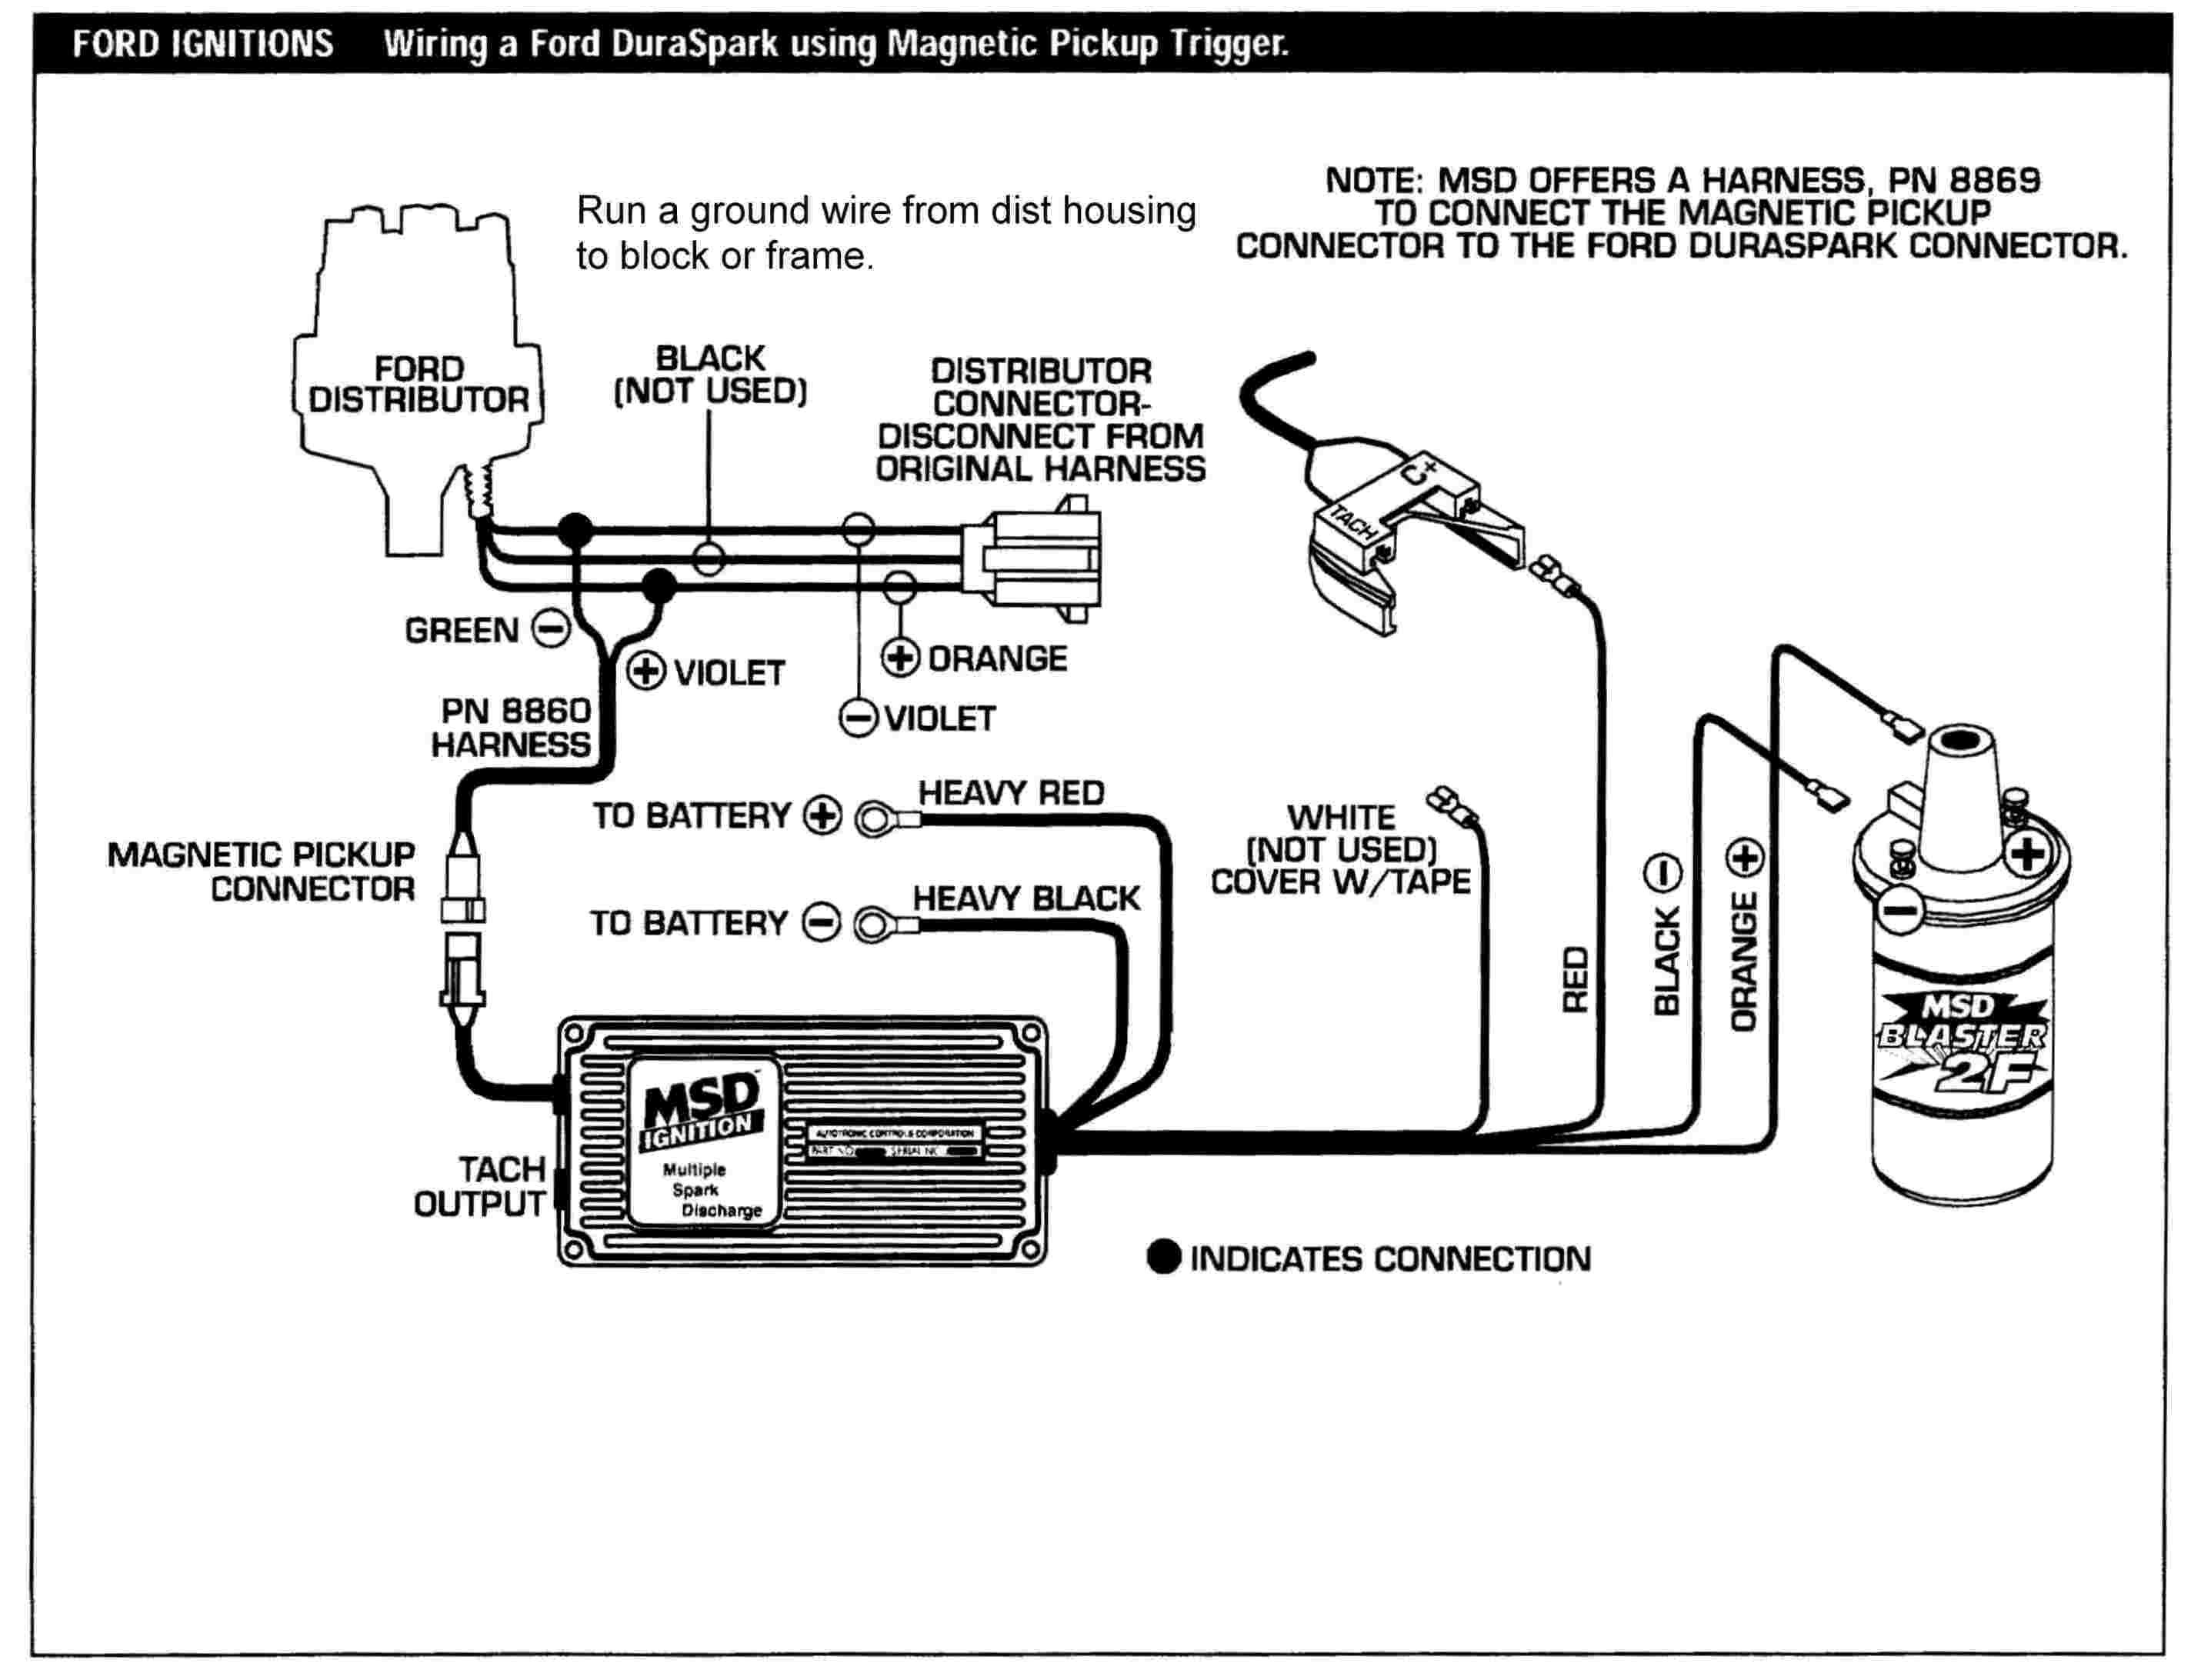 diagram] msd 6420 wiring diagram full version hd quality wiring diagram -  euengines.arapa.fr  euengines.arapa.fr